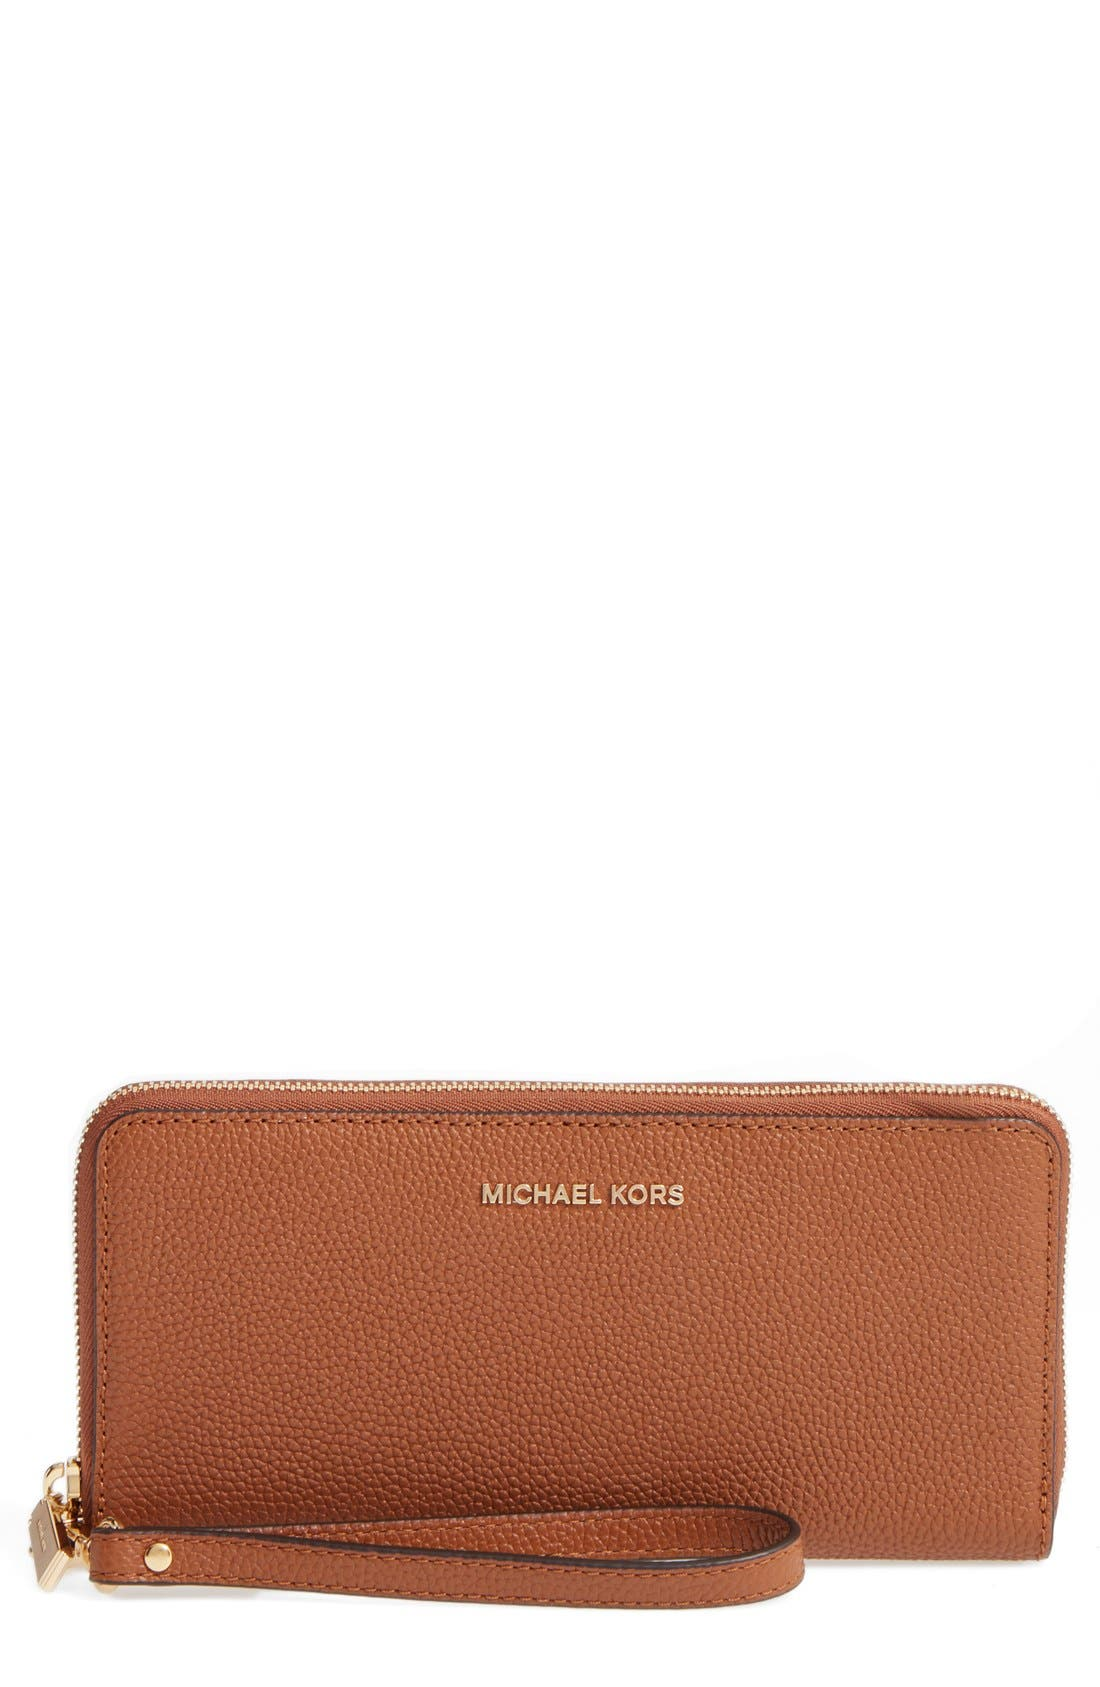 'Mercer' Leather Continental Wallet,                             Main thumbnail 3, color,